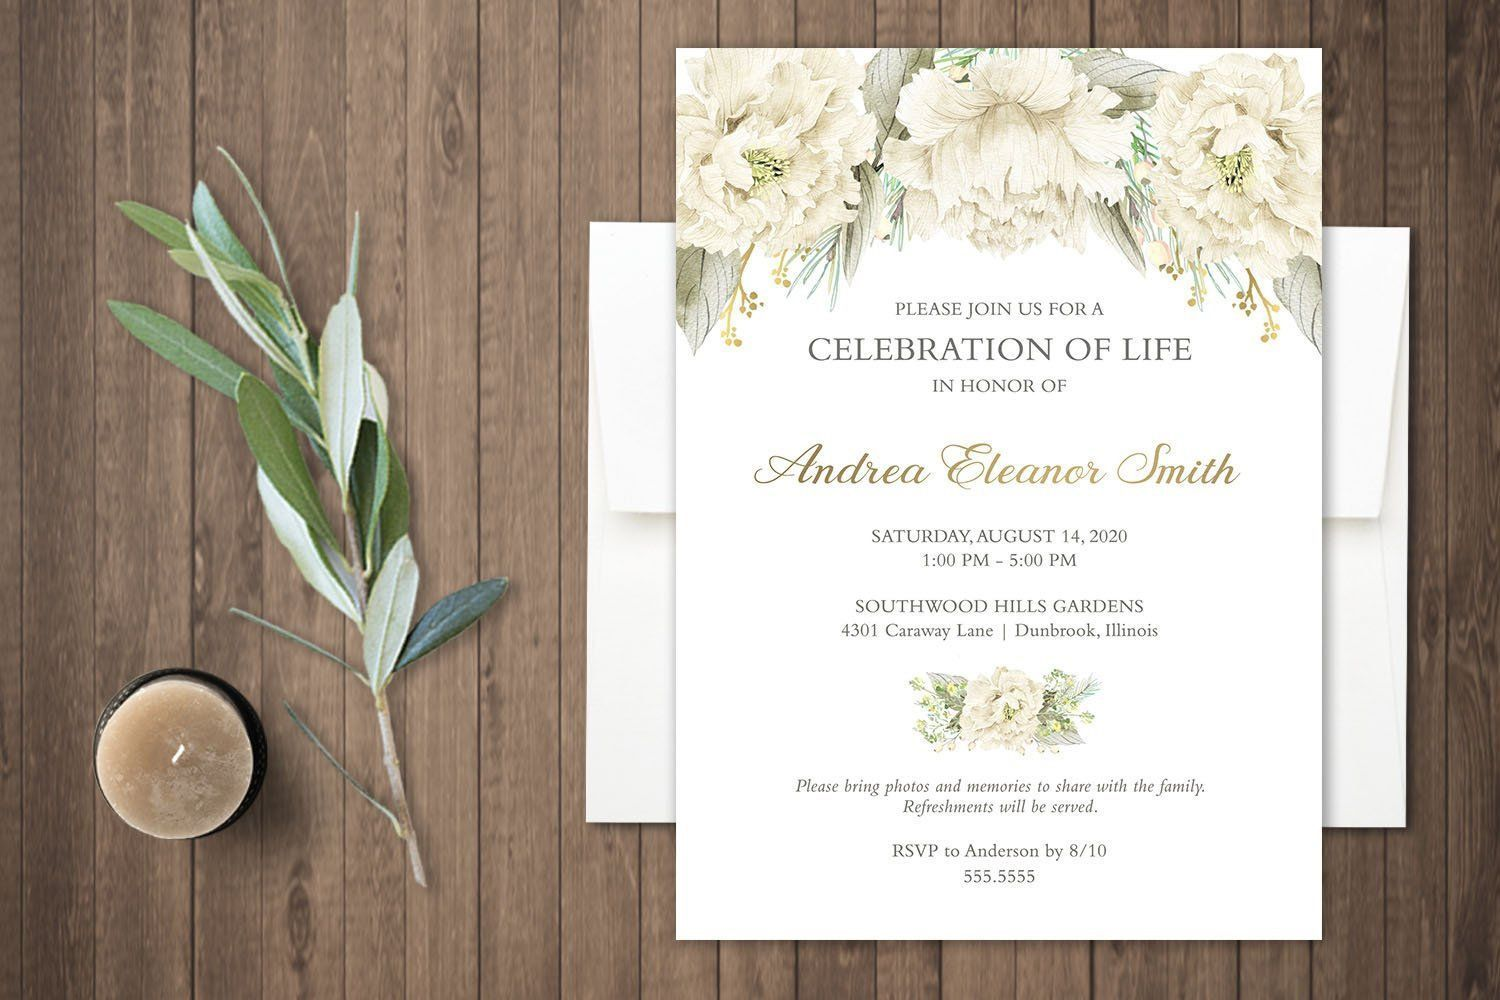 000 Unforgettable Celebration Of Life Announcement Template Free Highest Clarity  Invitation Download InviteFull